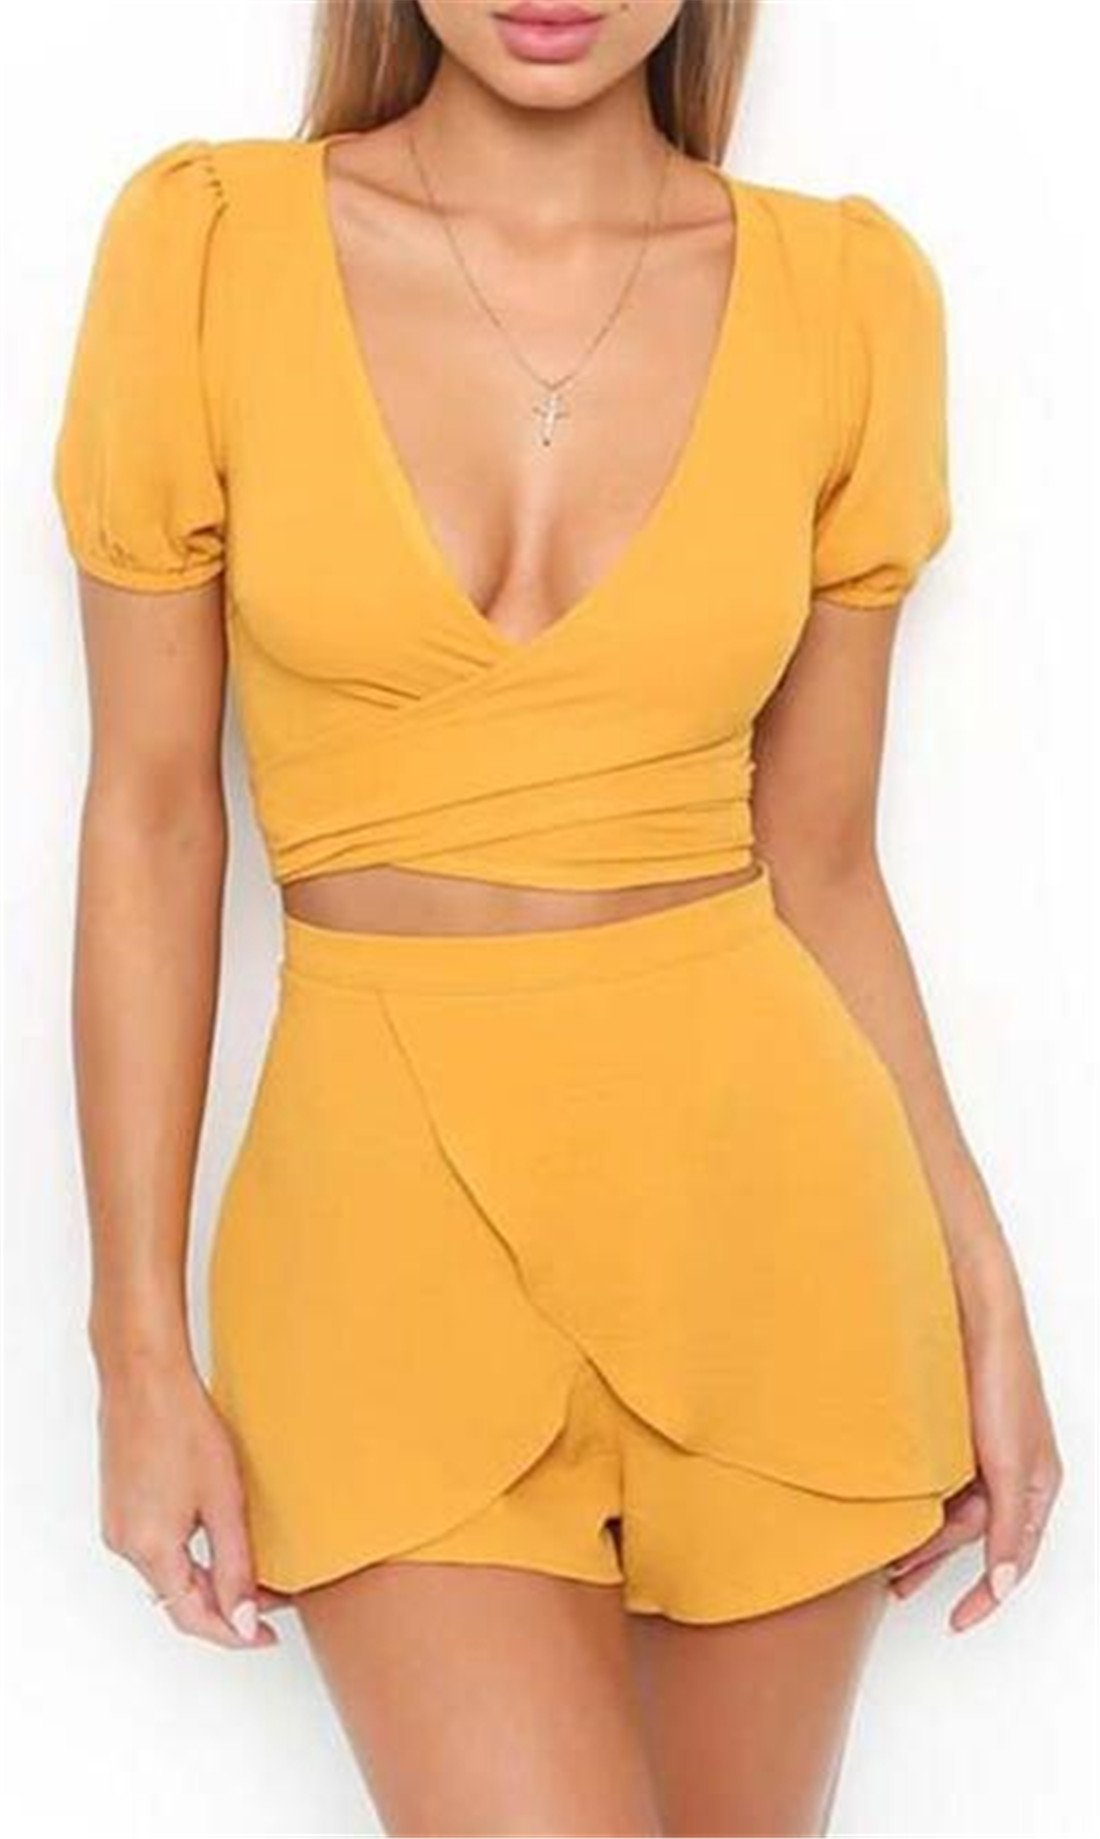 Women's 2 Piece Solid Color Short Sleeve Crop Top with Shorts Set Size M (Yellow)